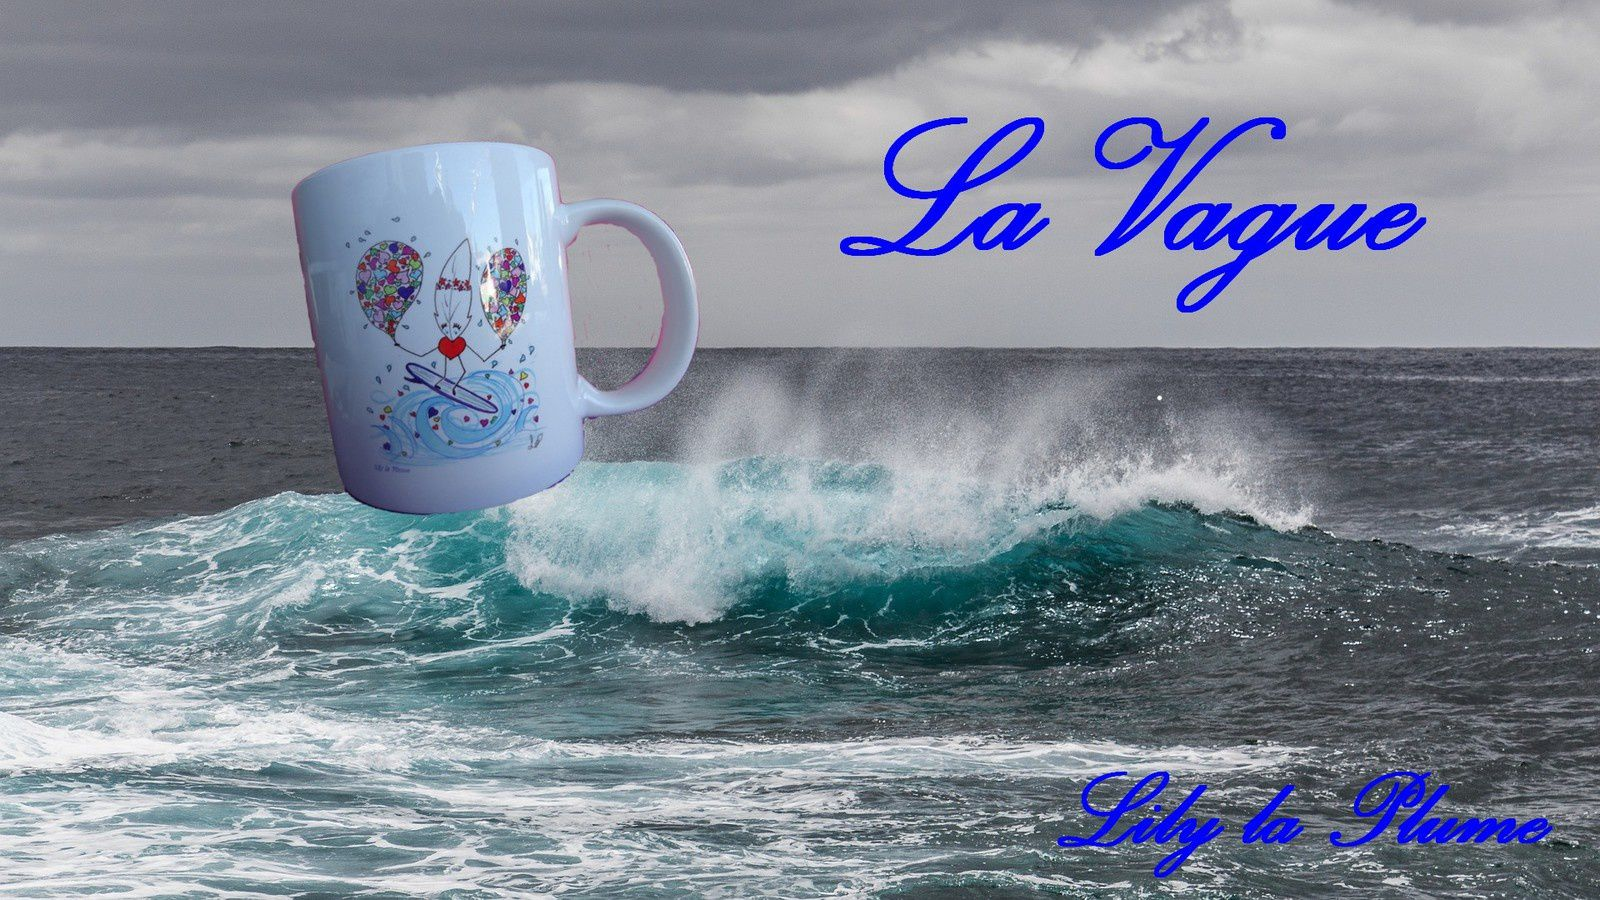 Heureux ... La Vague